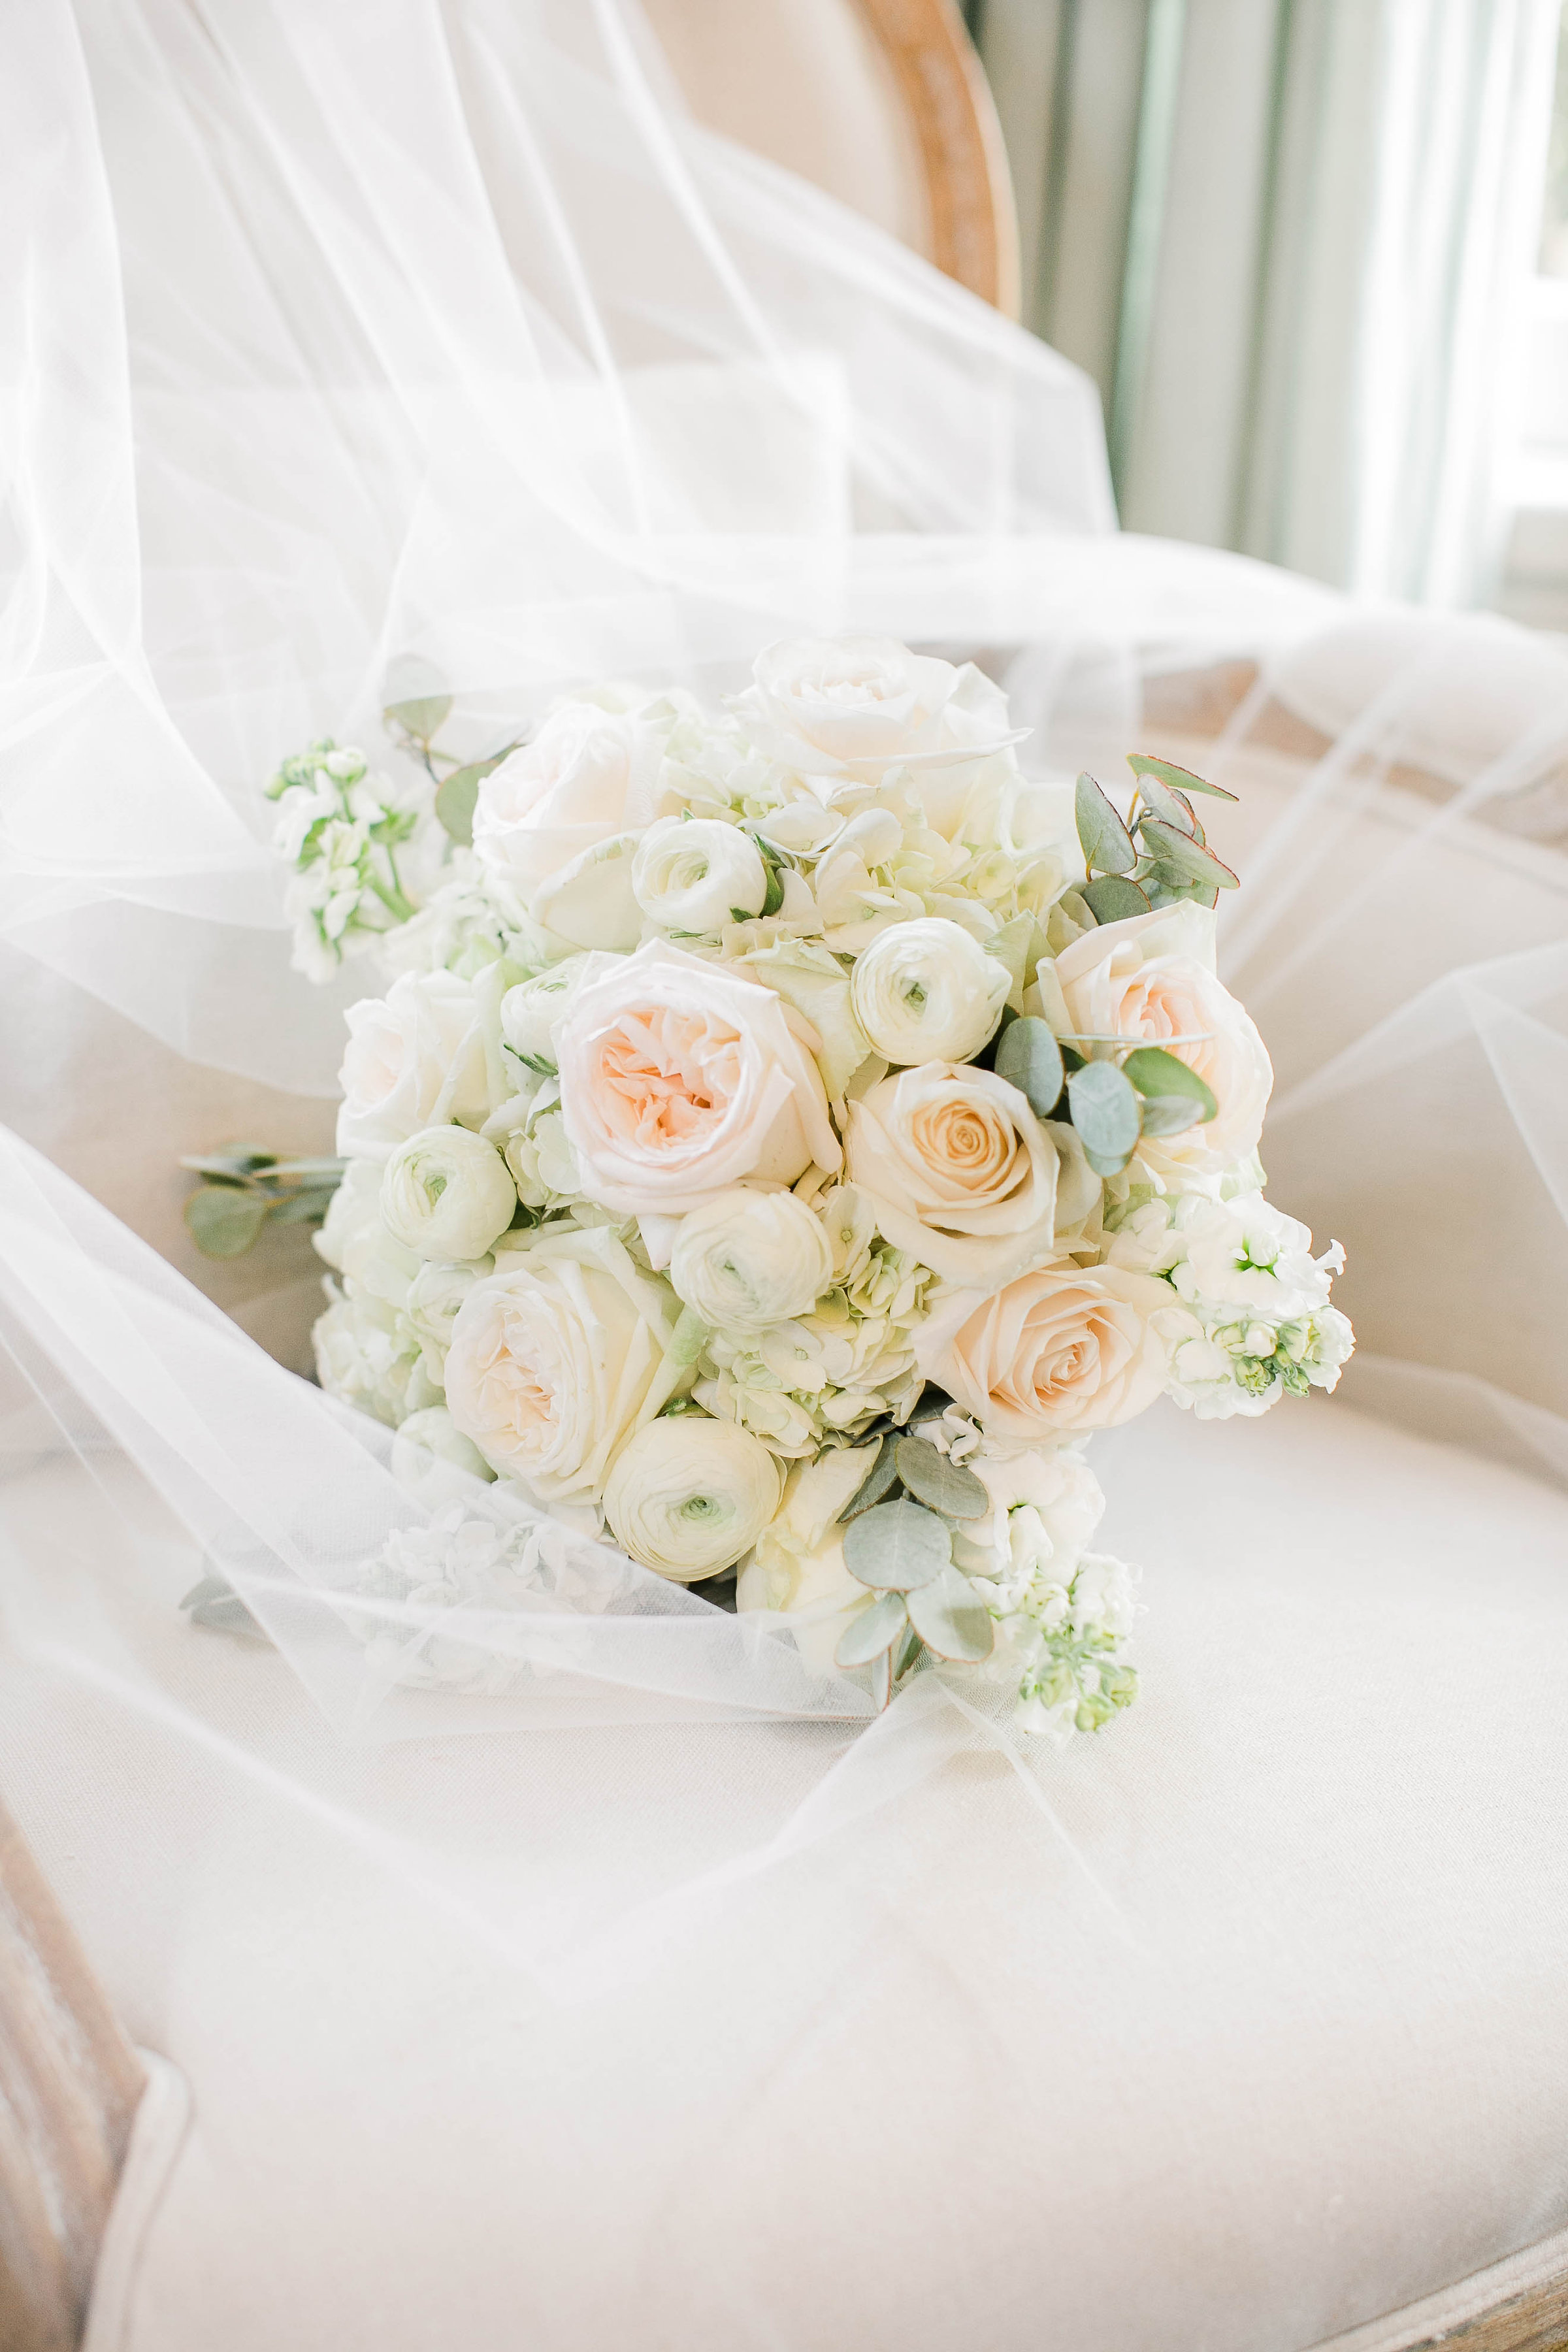 All-white bouquet from Fernwood Floral